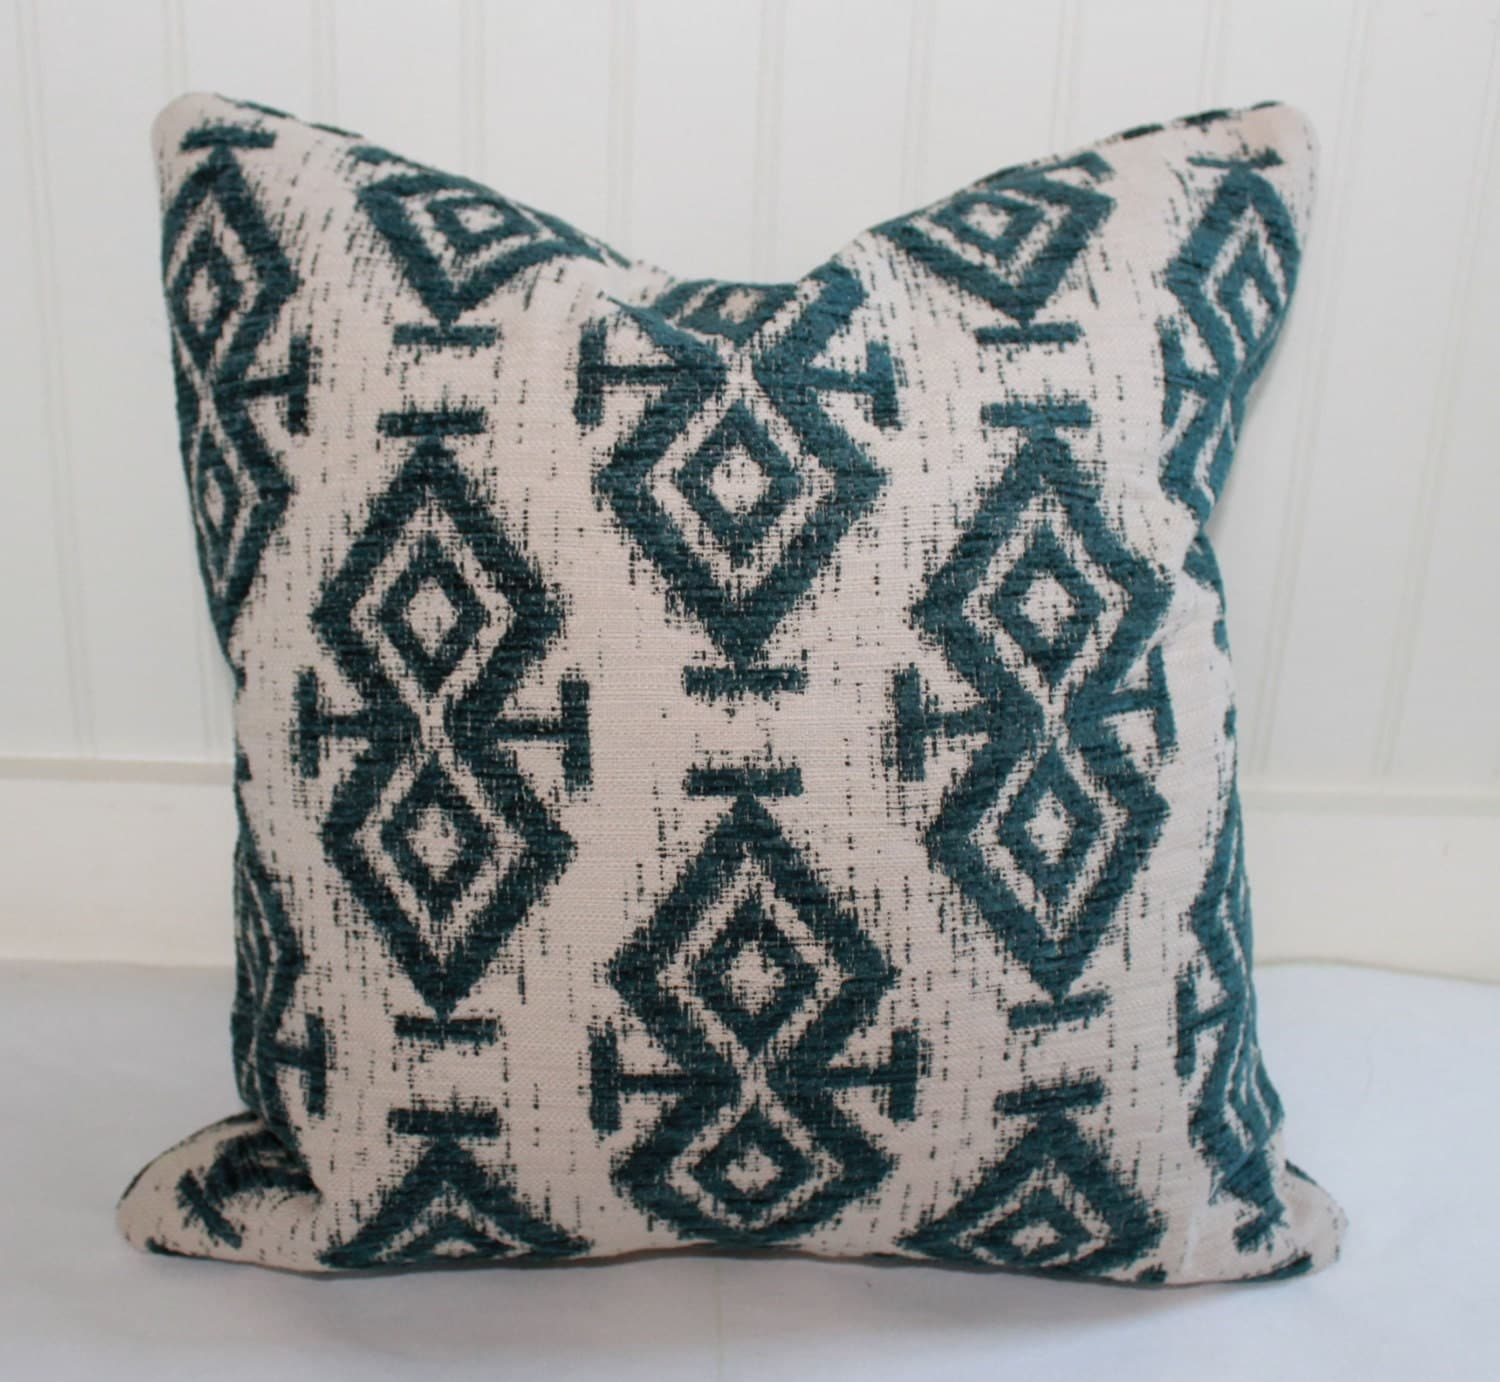 IN STOCK / Teal Ikat Pillow Cover / 18 X 18 / Designer fabric